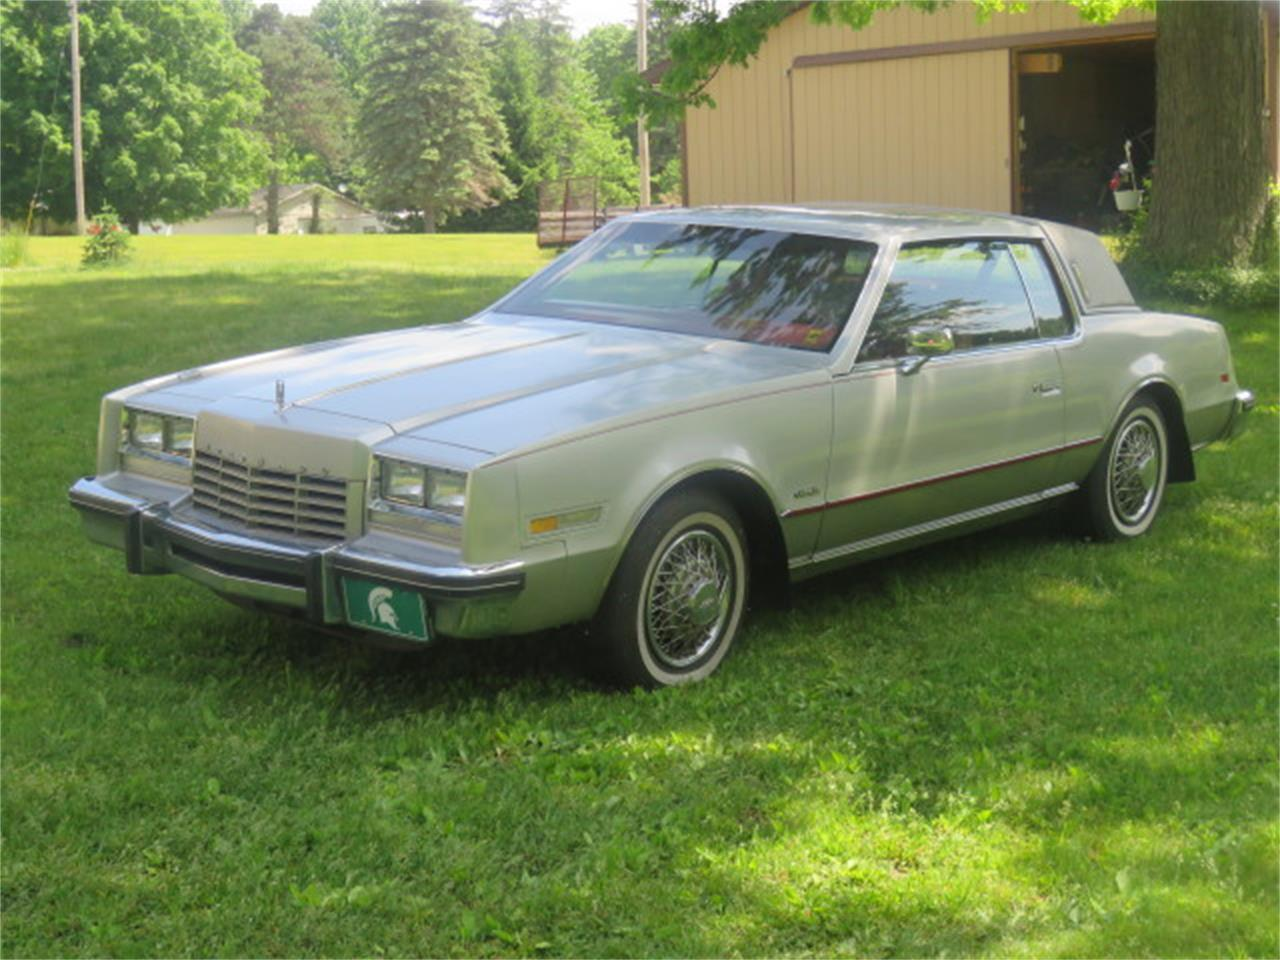 1972 Ford Gran Torino further 1979 Oldsmobile Toronado For Sale In St Charles Michigan 48655 together with Index furthermore Hot Cars Pictures in addition 1972 Ford Gran Torino. on oldsmobile engine fast